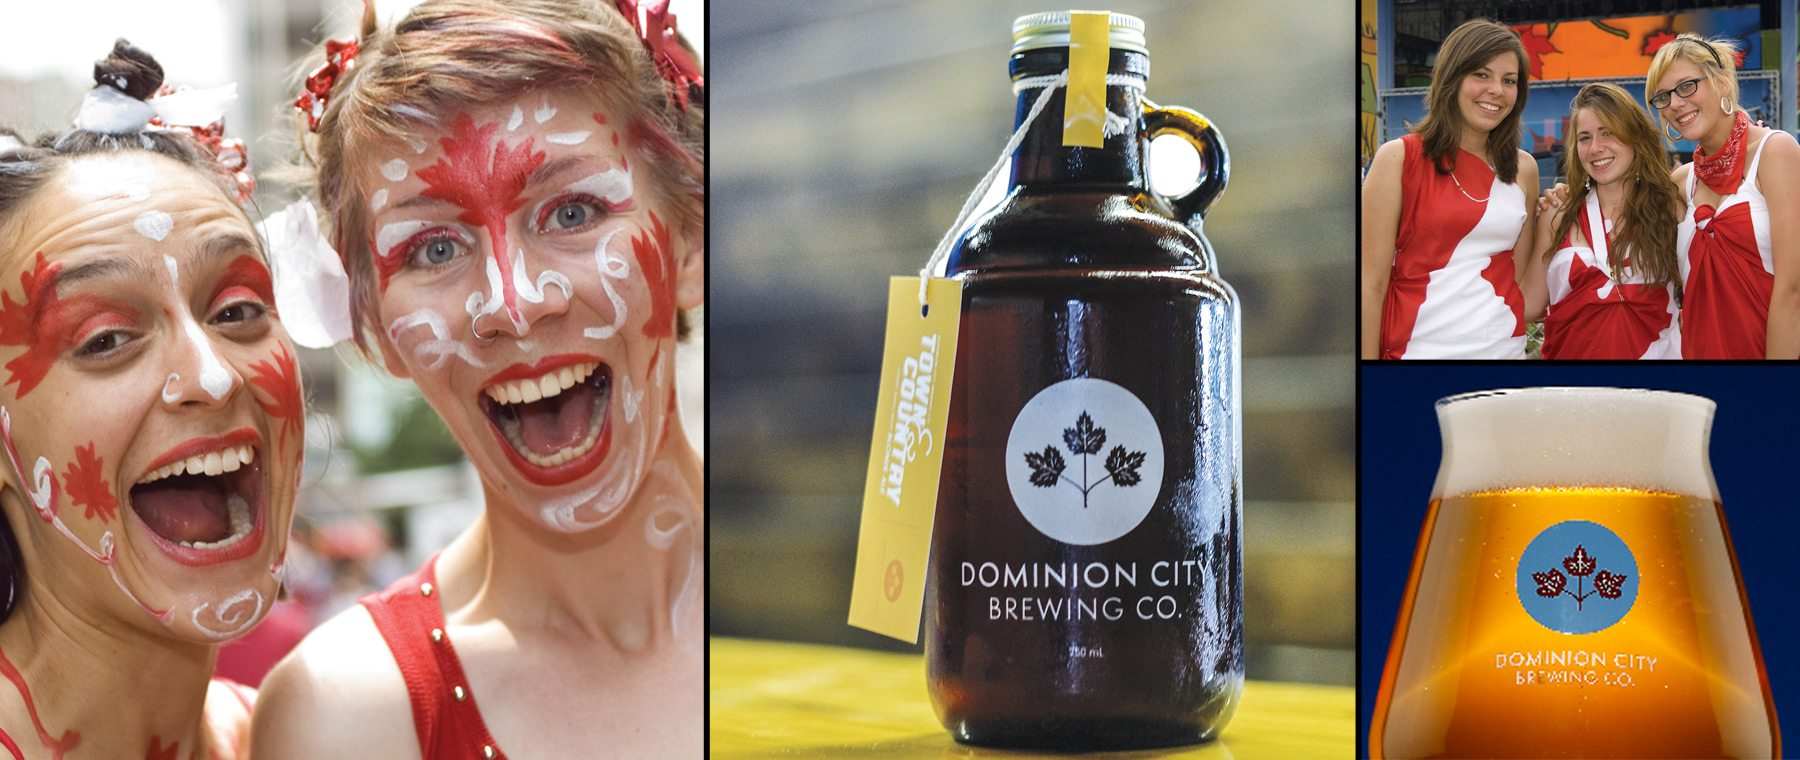 Dominion Days! Canada Day beer bash features great chefs & weirdly patriotic games